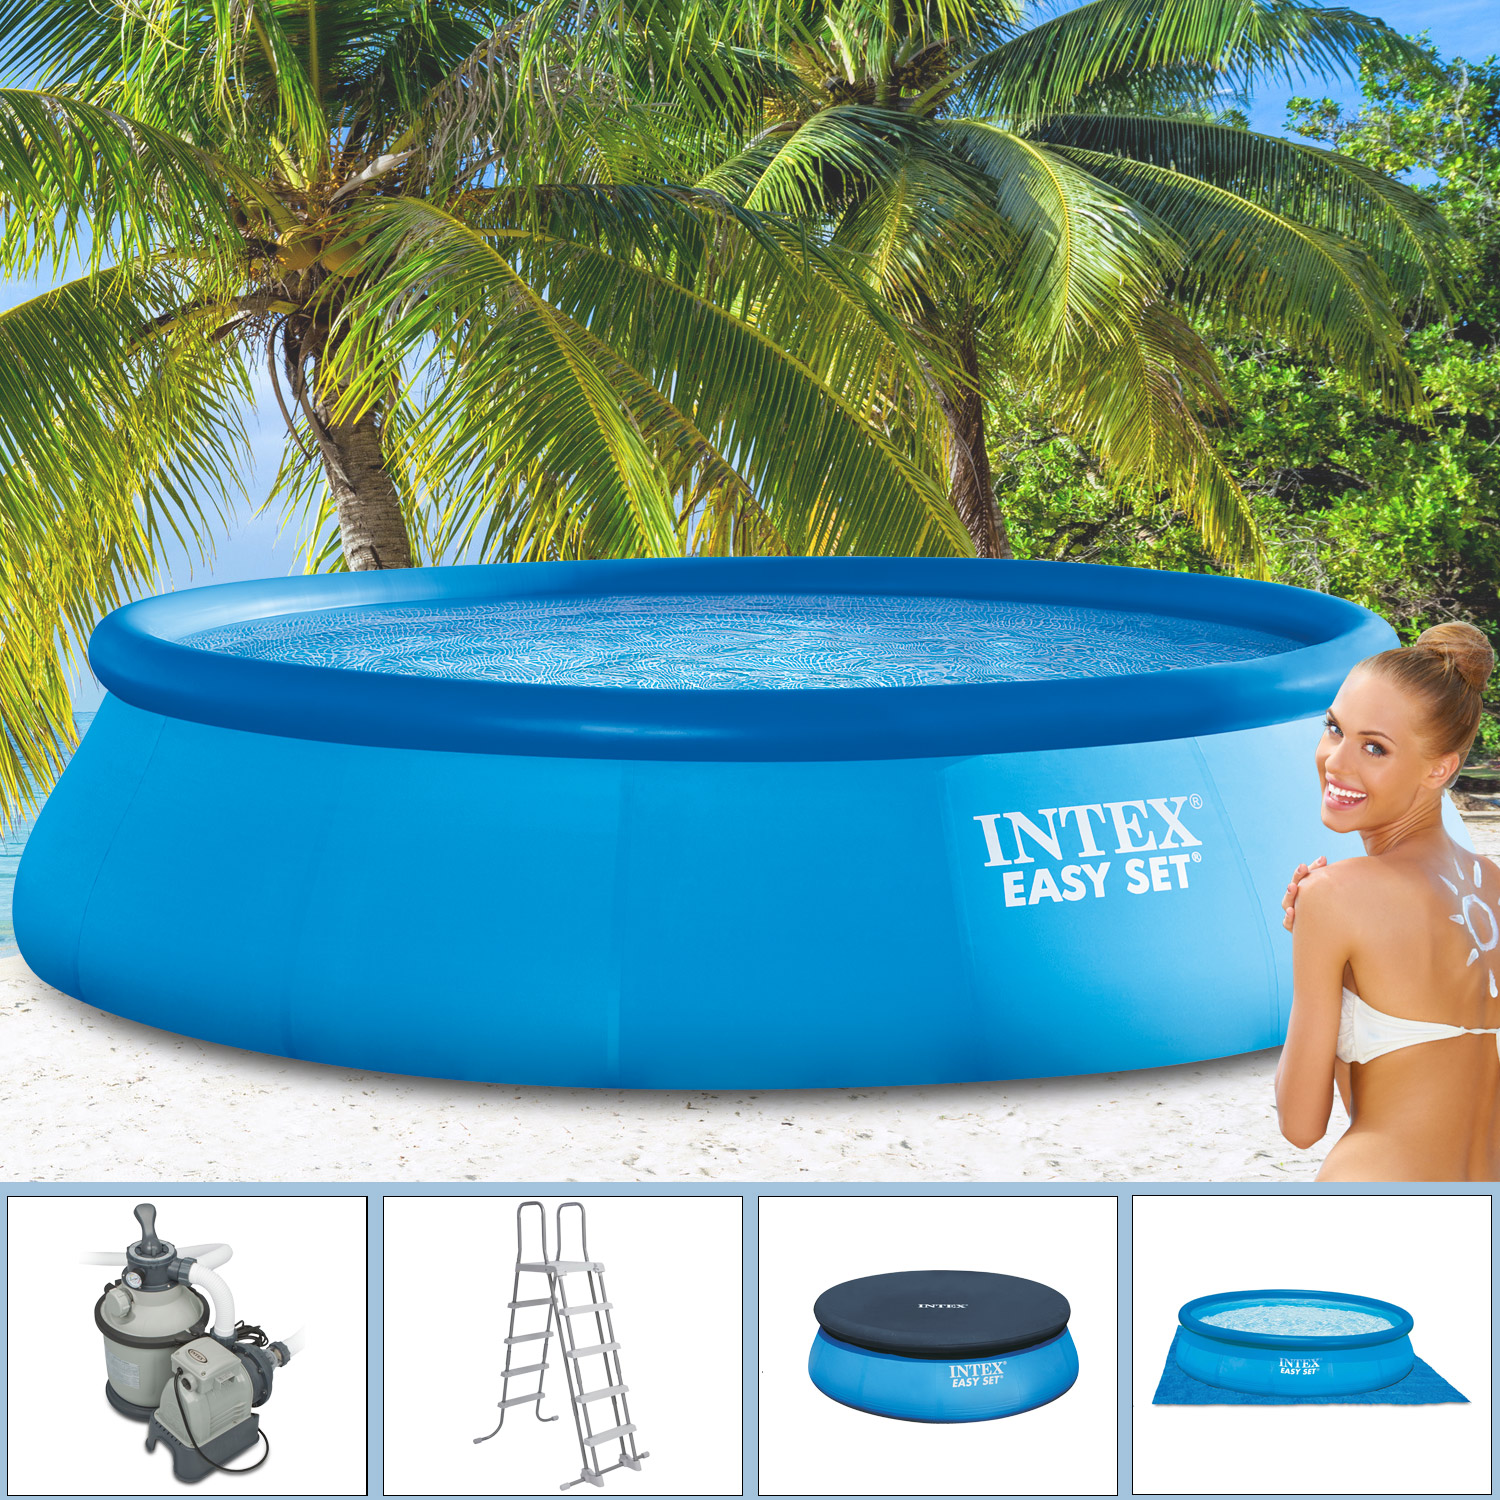 intex 457x107 komplettset sandfilterpumpe schwimmbecken schwimmbad swimming pool ebay. Black Bedroom Furniture Sets. Home Design Ideas